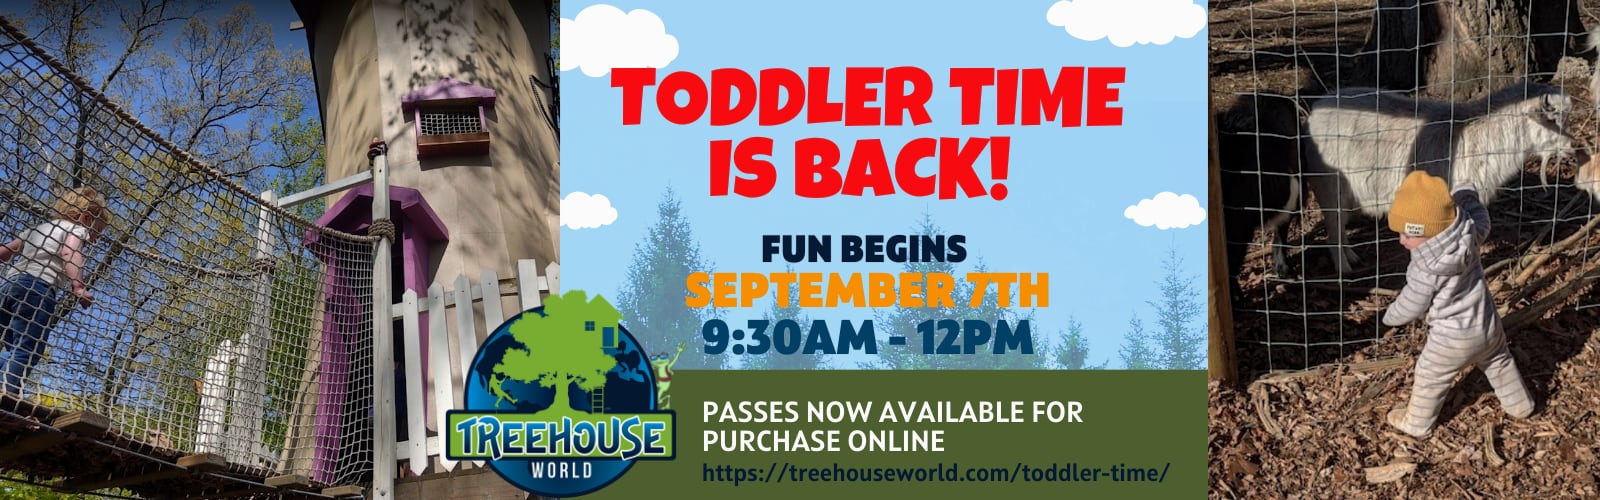 Toddler Time 2021 - Treehouse World